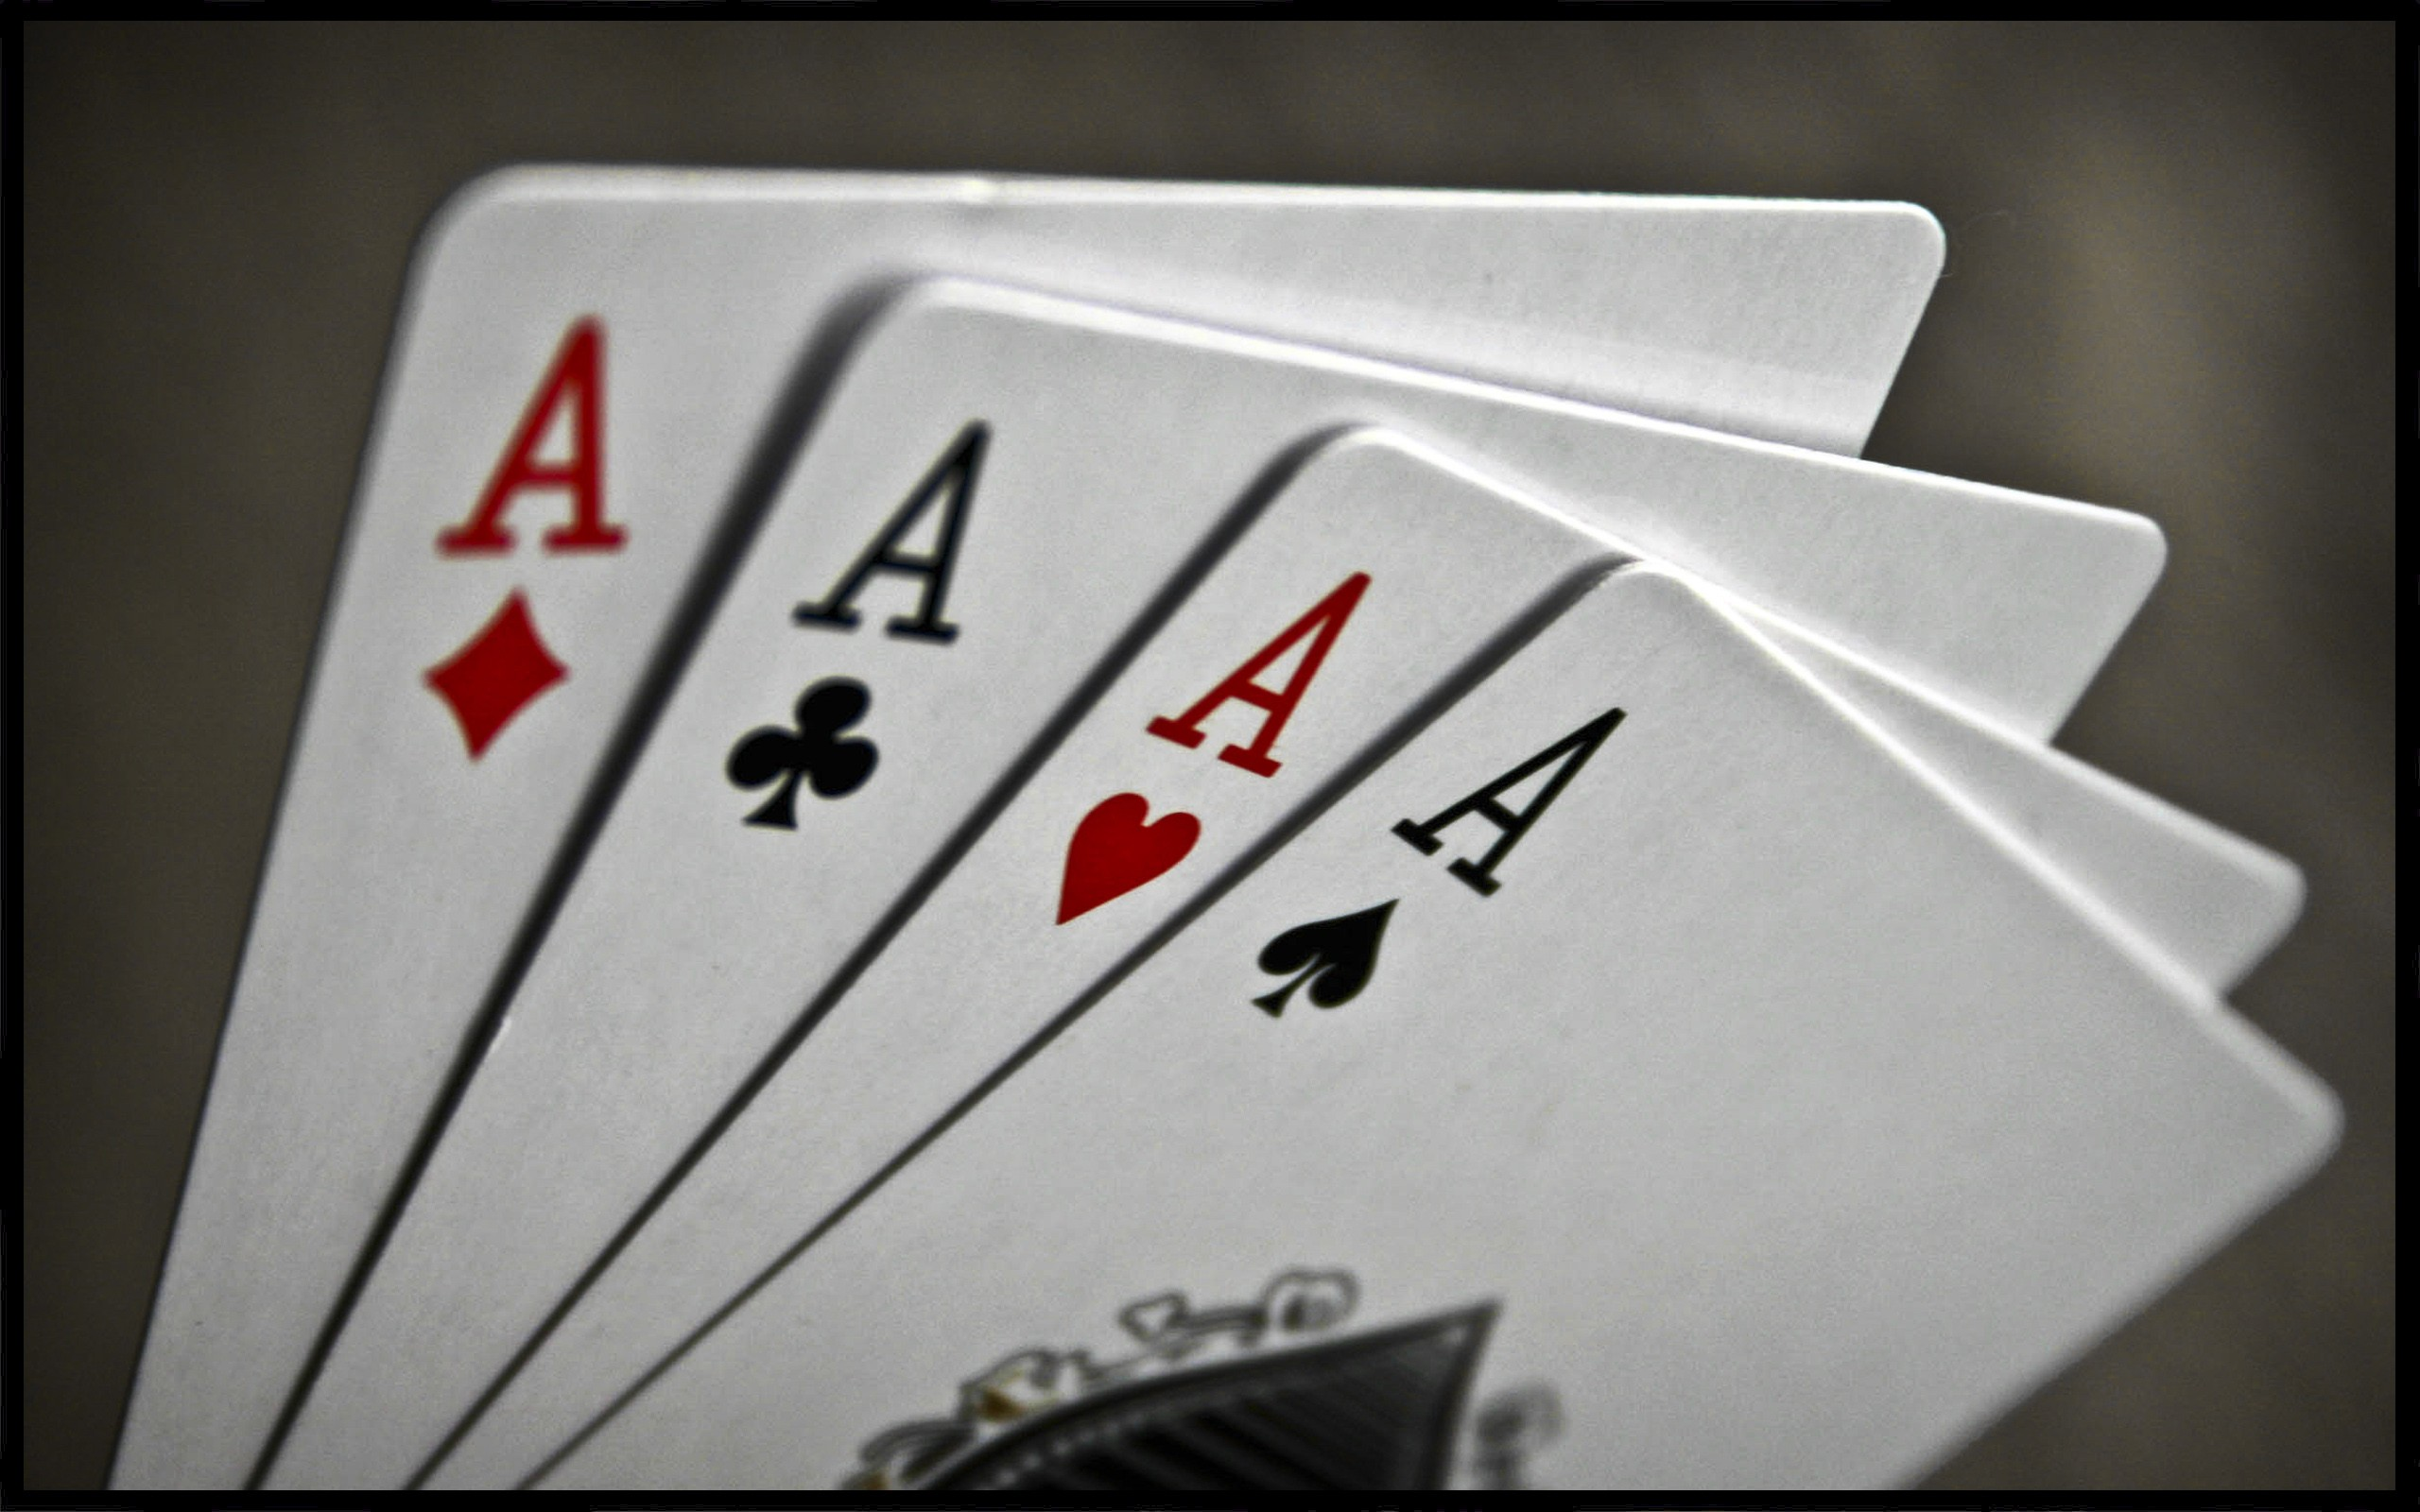 Aces poker cards